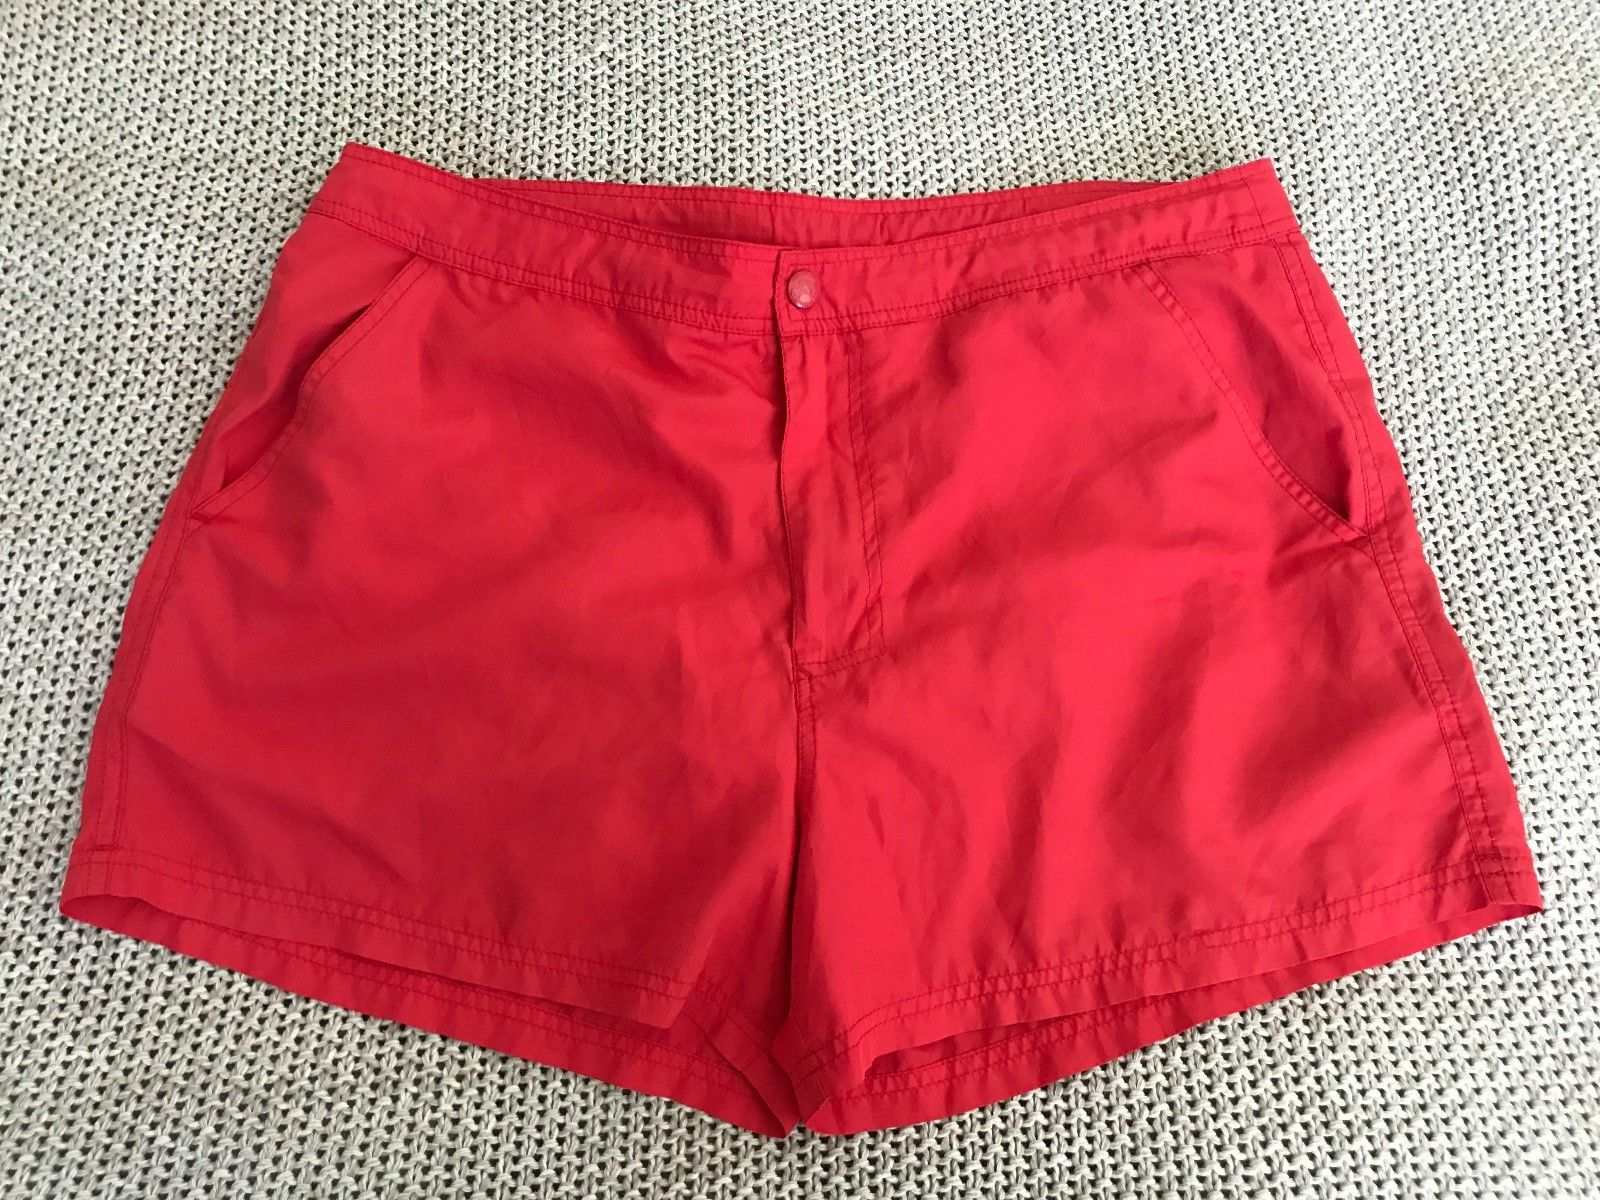 Mens ZARA MAN Casual Beach Board Shorts Surf Swim Wear Swimmers Red 34 –  Snatch A Bargain 24 7 5779552b708